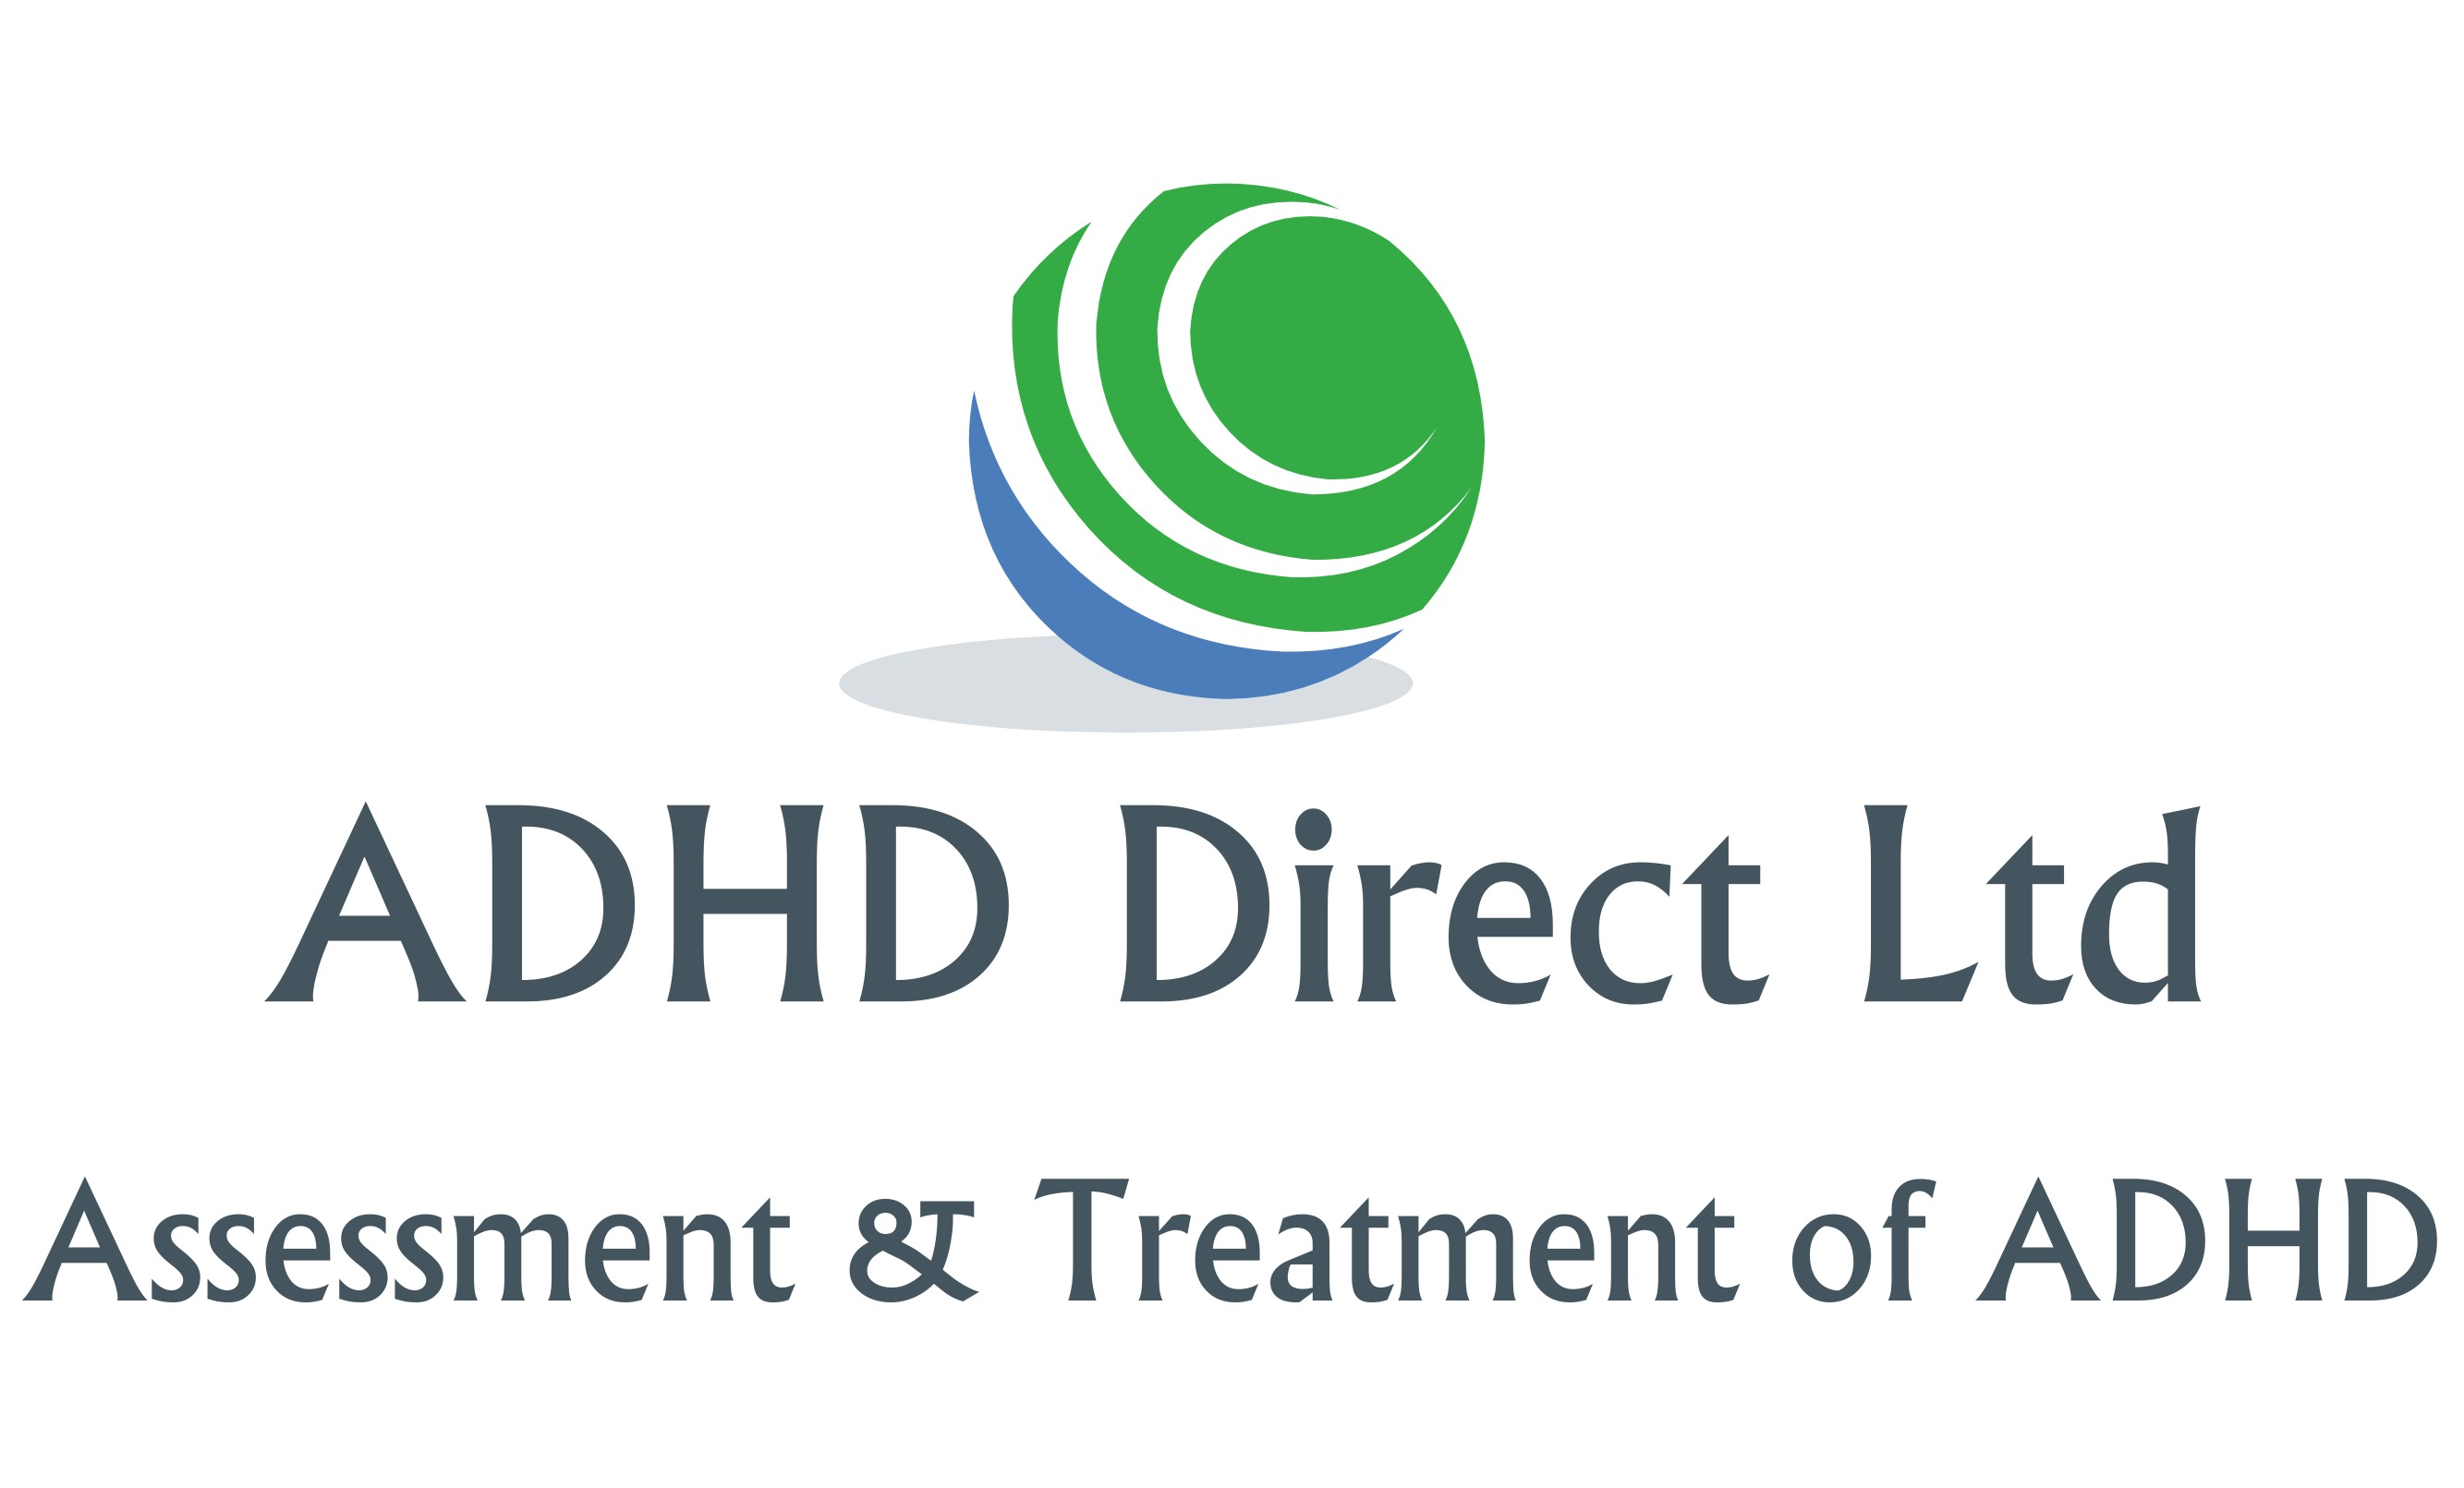 Adhd Direct Ltd and CAMHS Consultancy Ltd company logo